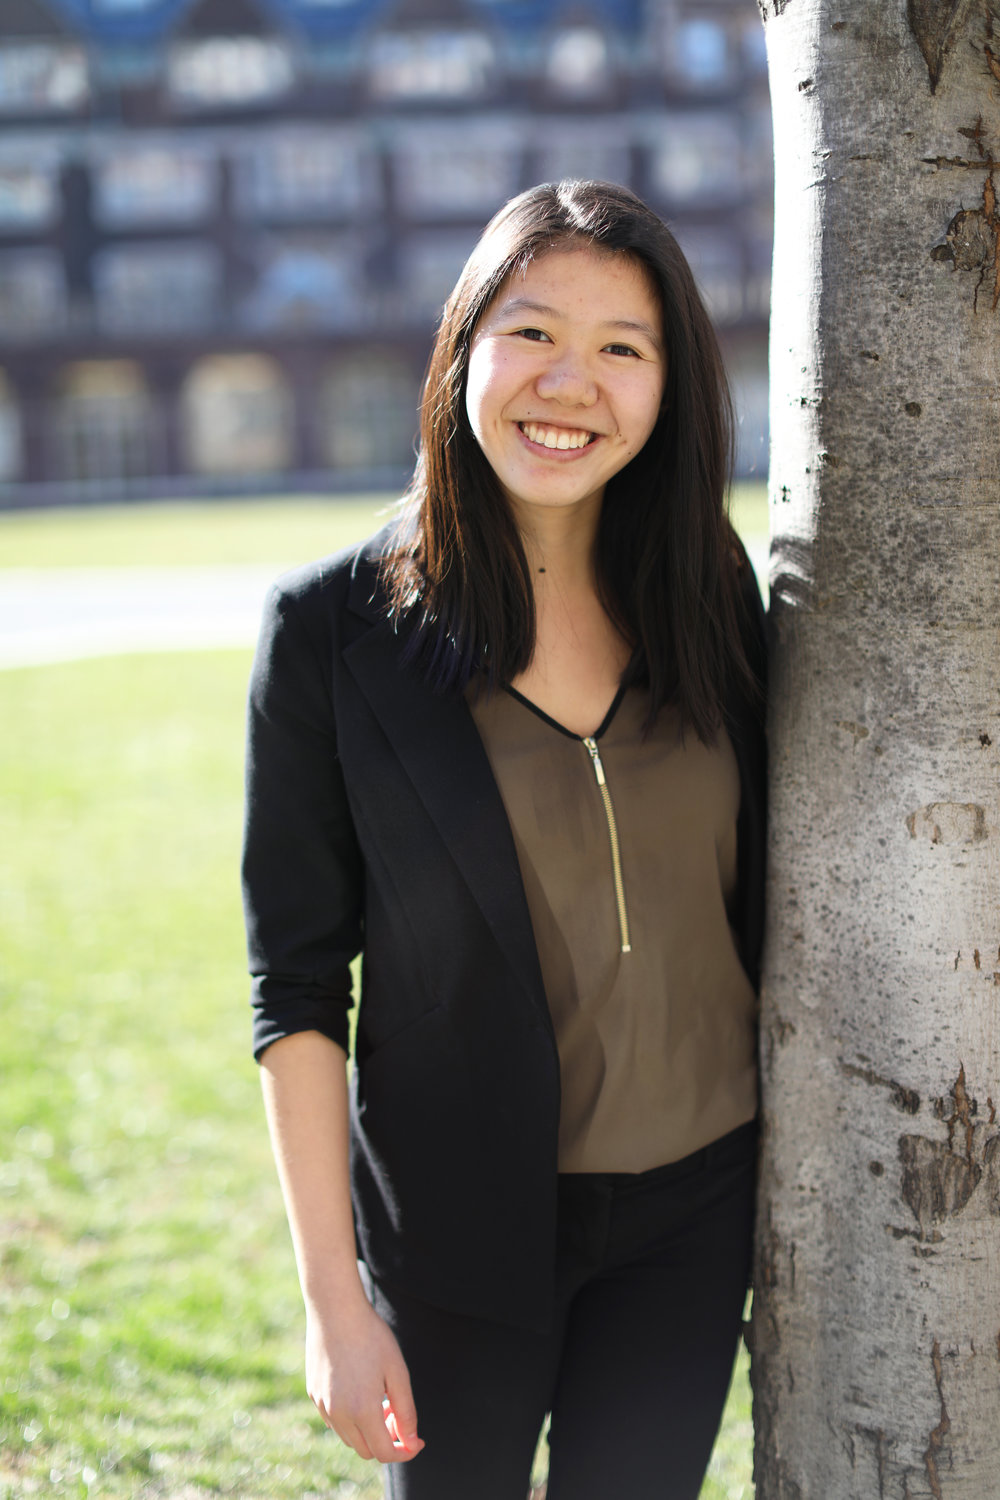 Carissa Zou - Vice President of PhilanthropyCarissa Zou (Class of 2020) is from Palo Alto, California and plans to concentrate in Finance and Operations, Informations, and Decisions. In the next year, Carissa is incredibly excited to serve as the VP of Philanthropy and continue to fortify and empower women in the local Philadelphia area and on Penn's campus through Wharton Women's two annual philanthropic events, the Dollar Diva Conference and Dressing for Success. She is also looking forward to starting the new Financial Literacy Tutoring Project in hopes of spreading financial literacy resources to a broader scope of local Philadelphia schools. Aside from Wharton Women, she is also a tour guide for the Kite and Key Society, a project leader for MUSE Social Impact Consulting, and works at the Student Federal Credit Union. Feel free to reach out to her at czou@wharton.upenn.edu.